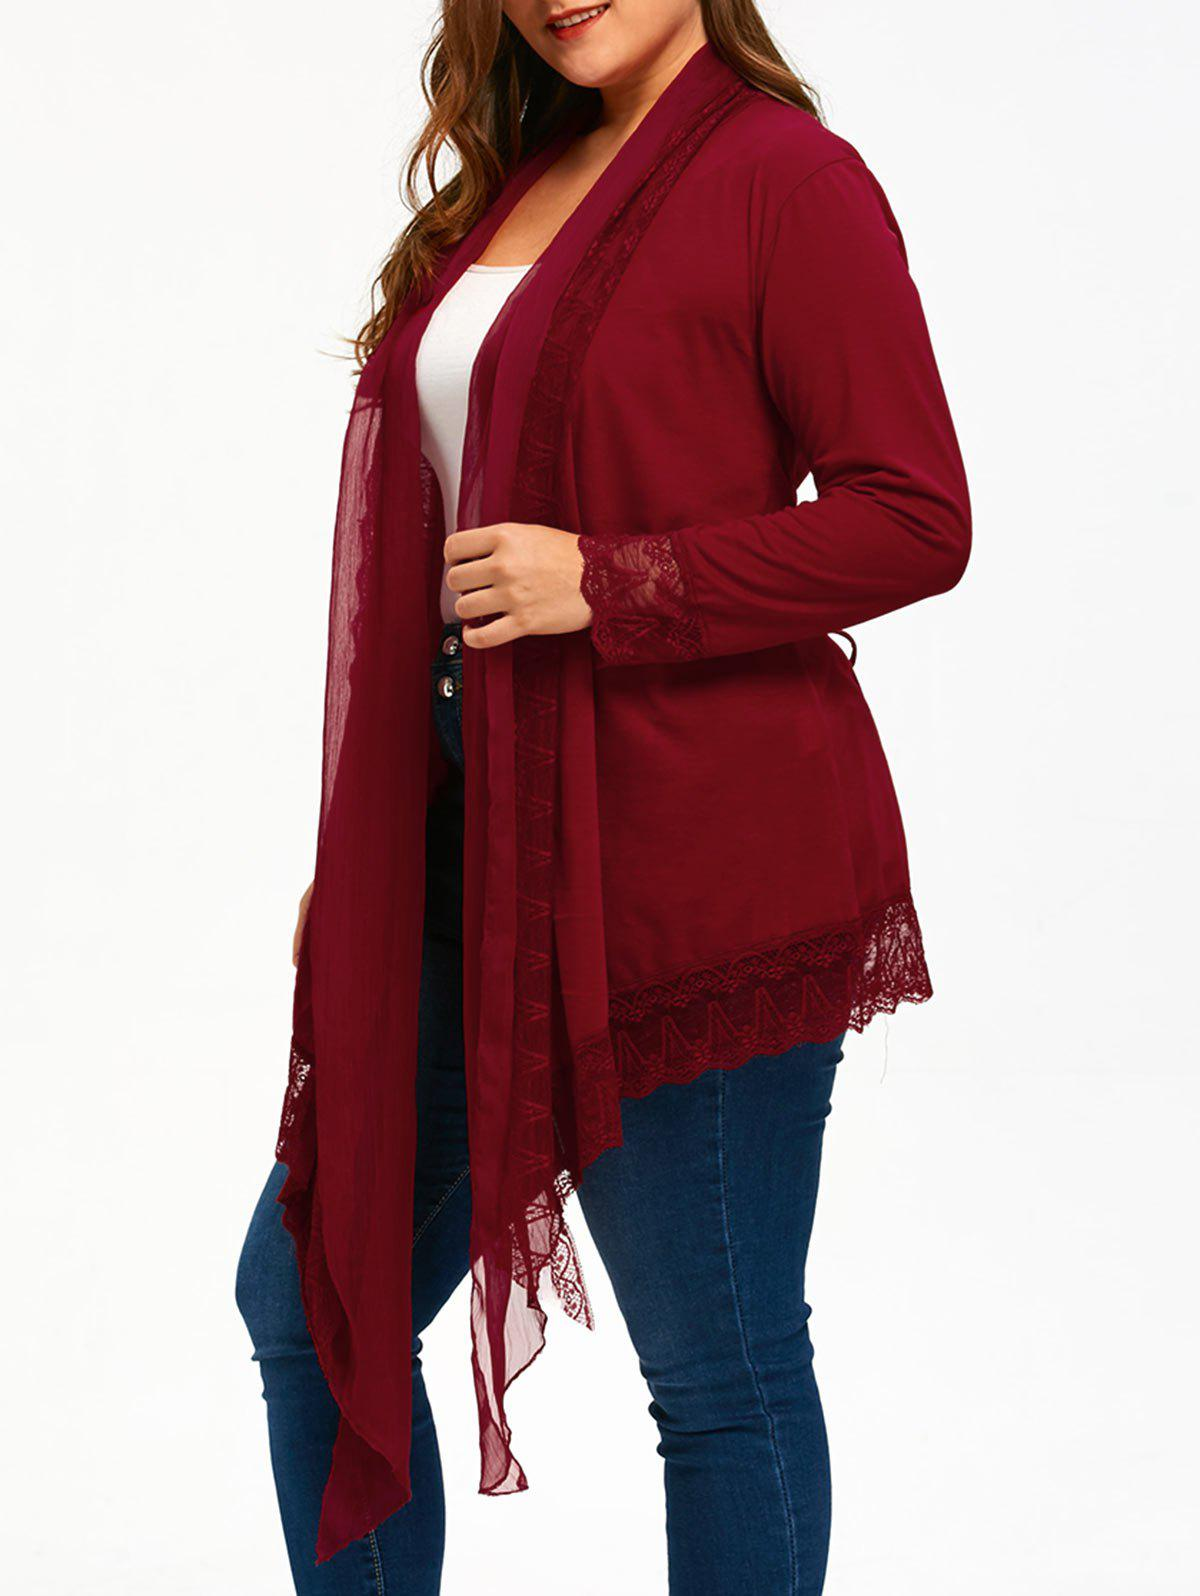 Lace Trim Criss Cross Plus Size CardiganWOMEN<br><br>Size: 5XL; Color: WINE RED; Type: Cardigans; Material: Polyester,Spandex; Sleeve Length: Full; Collar: Turn-down Collar; Style: Casual; Season: Fall,Spring,Winter; Pattern Type: Solid; Elasticity: Elastic; Weight: 0.3200kg; Package Contents: 1 x Cardigan;